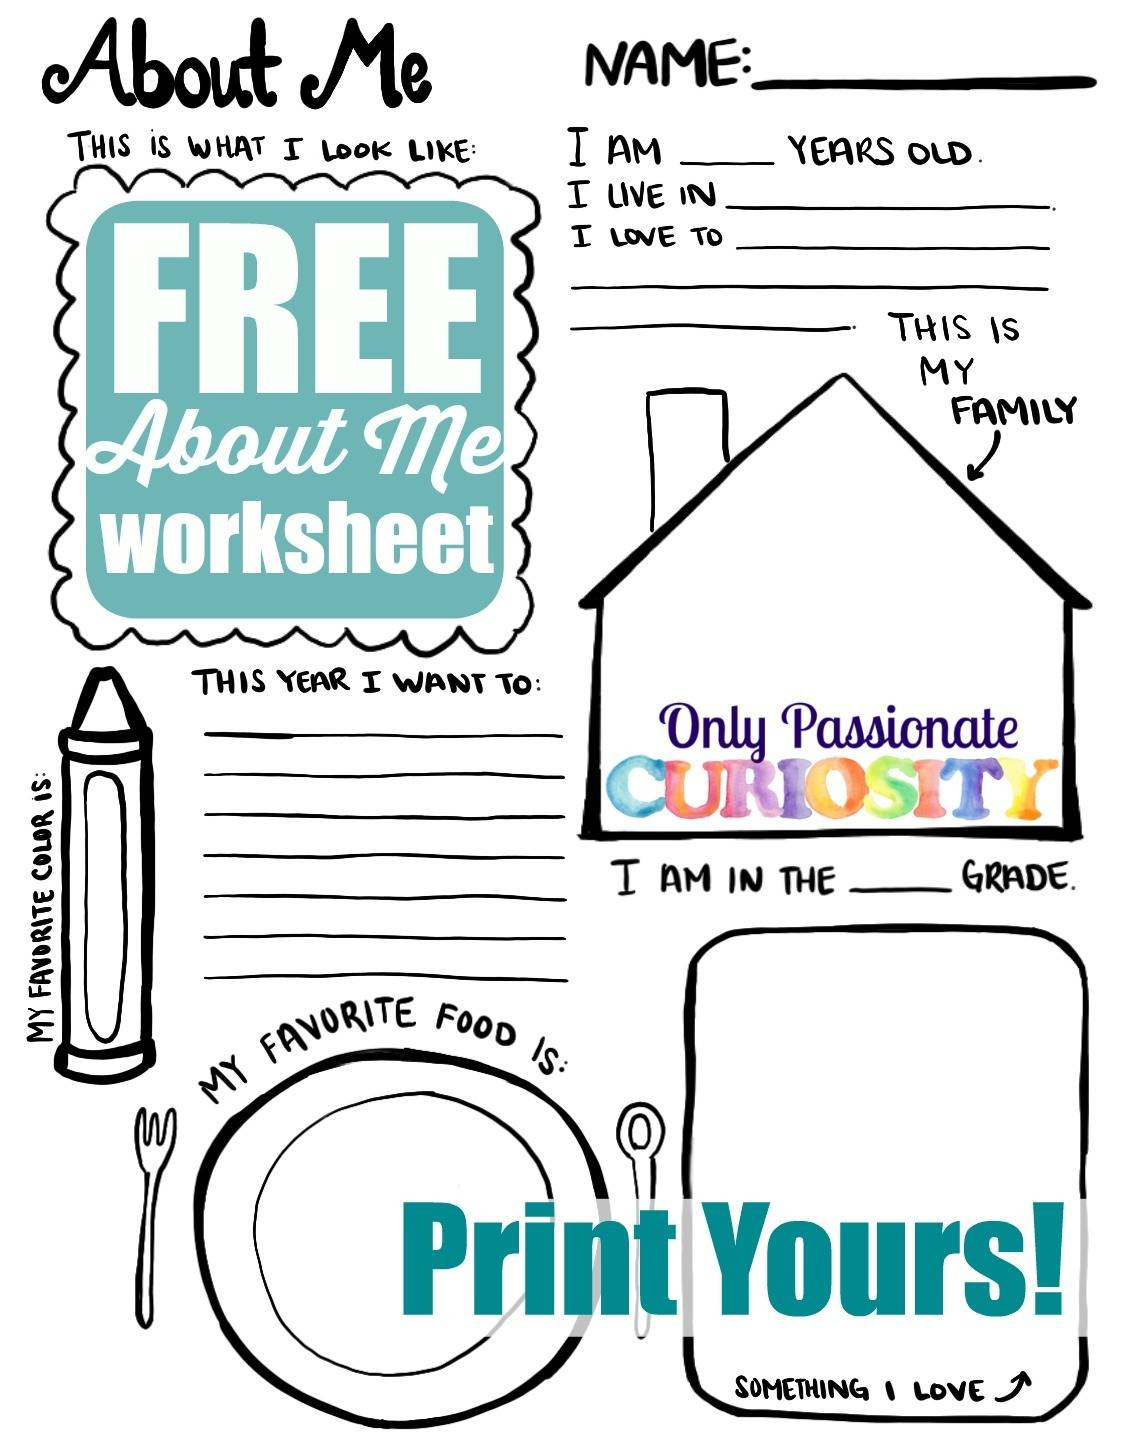 All About Me Back To School Printable Only Passionate Curiosity